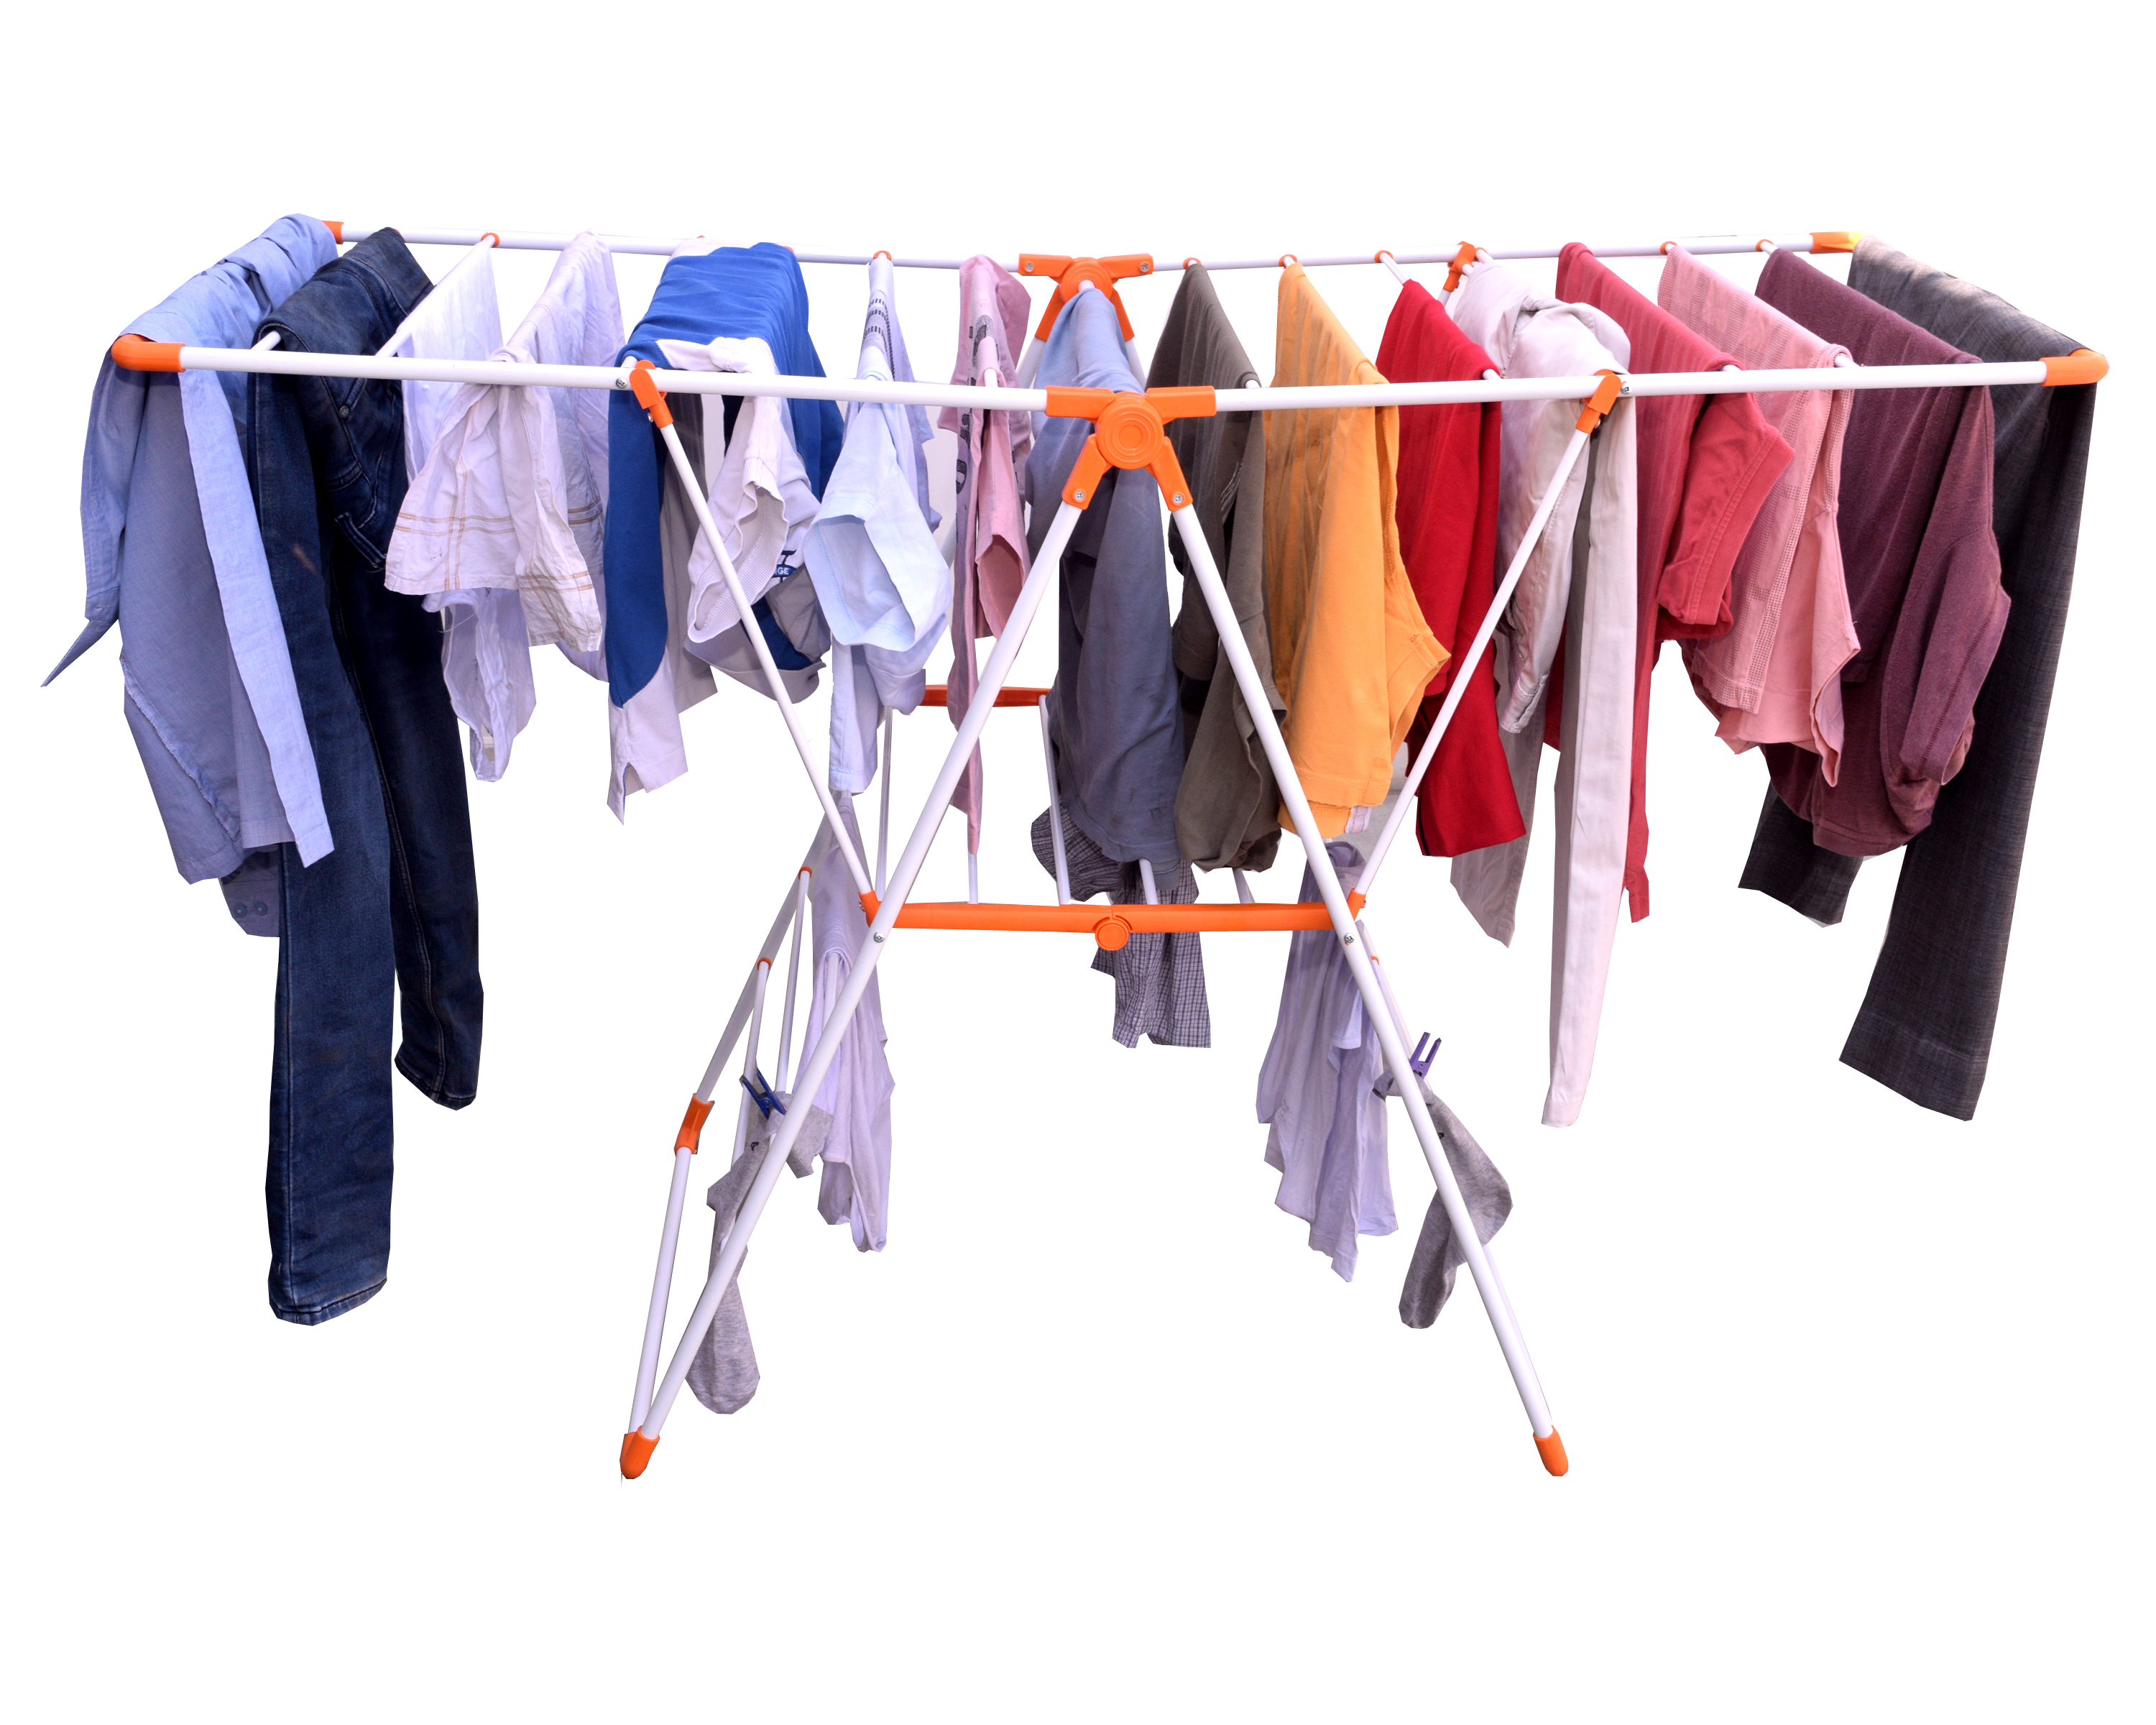 Butterfly cloth drying stand for indoor and outdoor applications